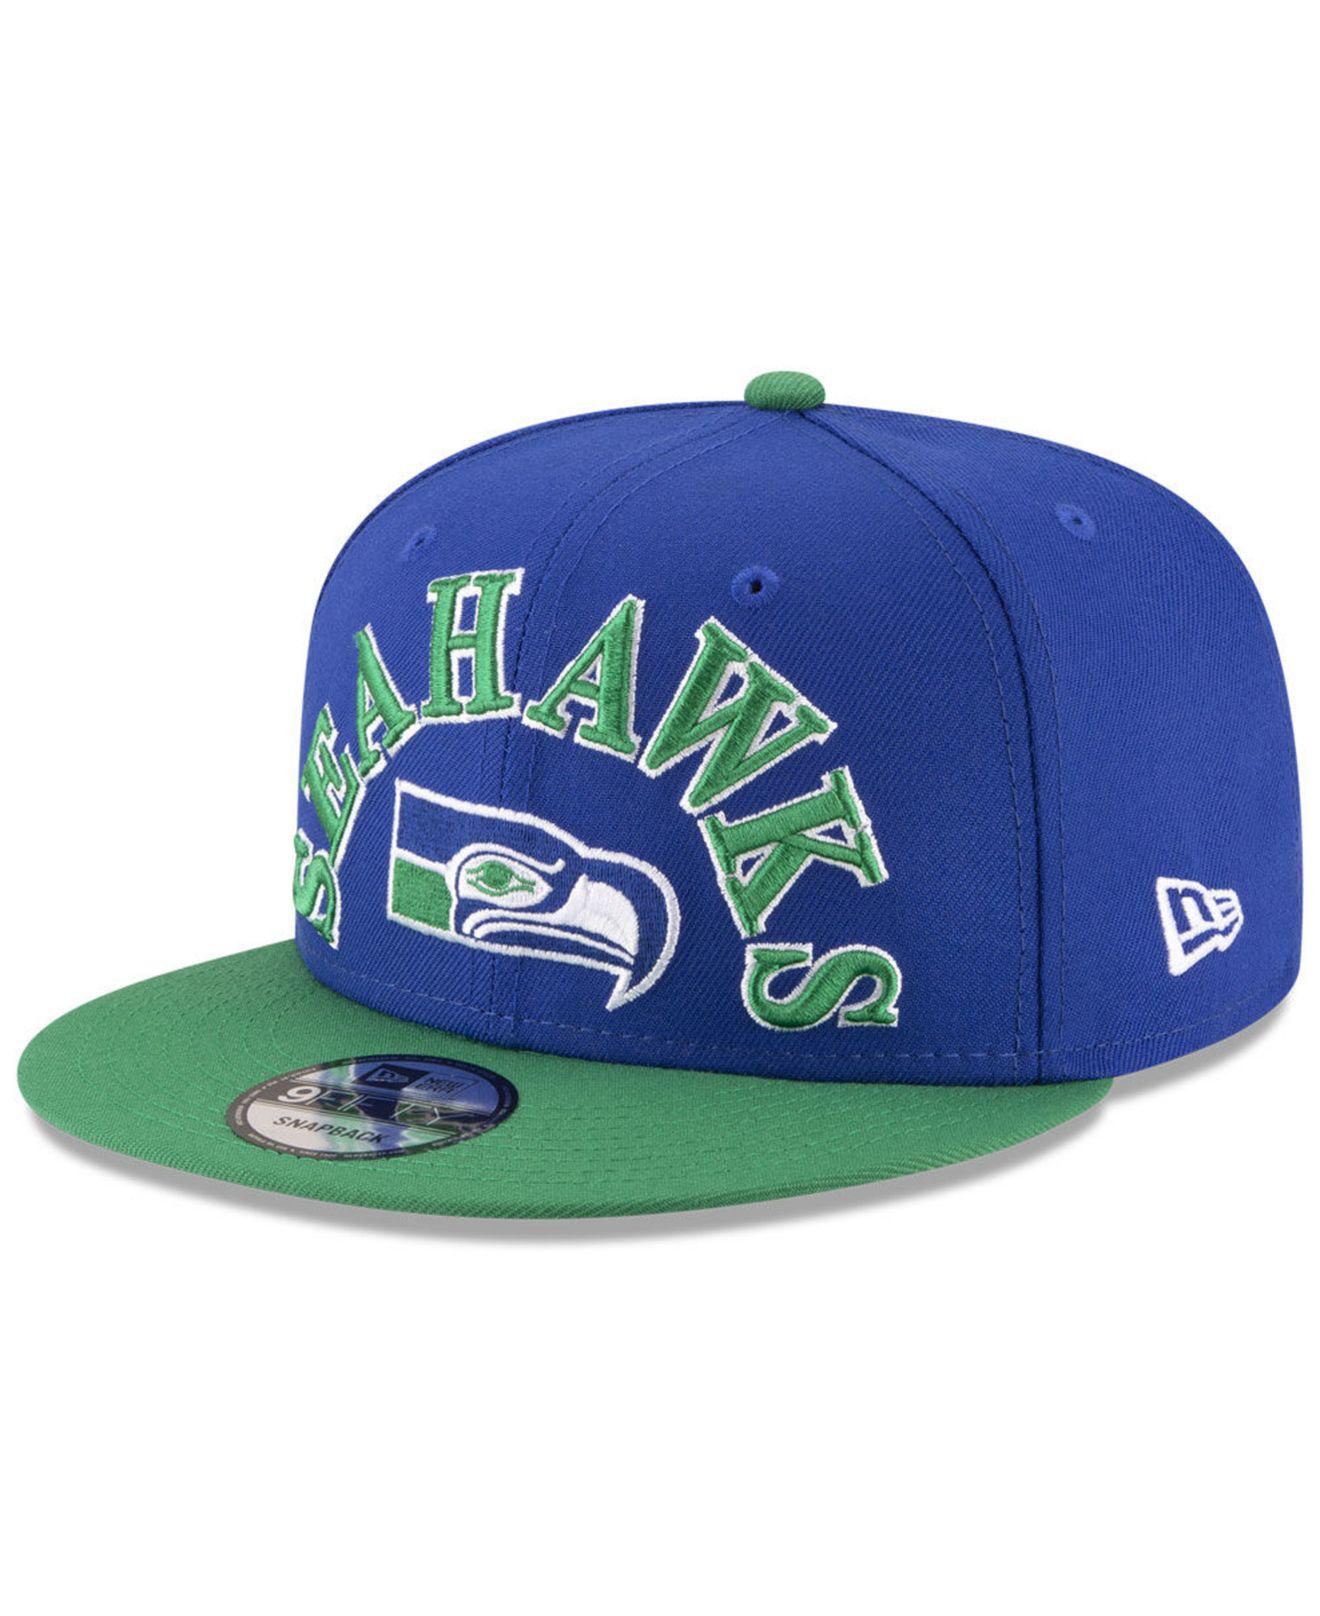 0a784cae265 Lyst - KTZ Seattle Seahawks Retro Logo 9fifty Snapback Cap in Green ...